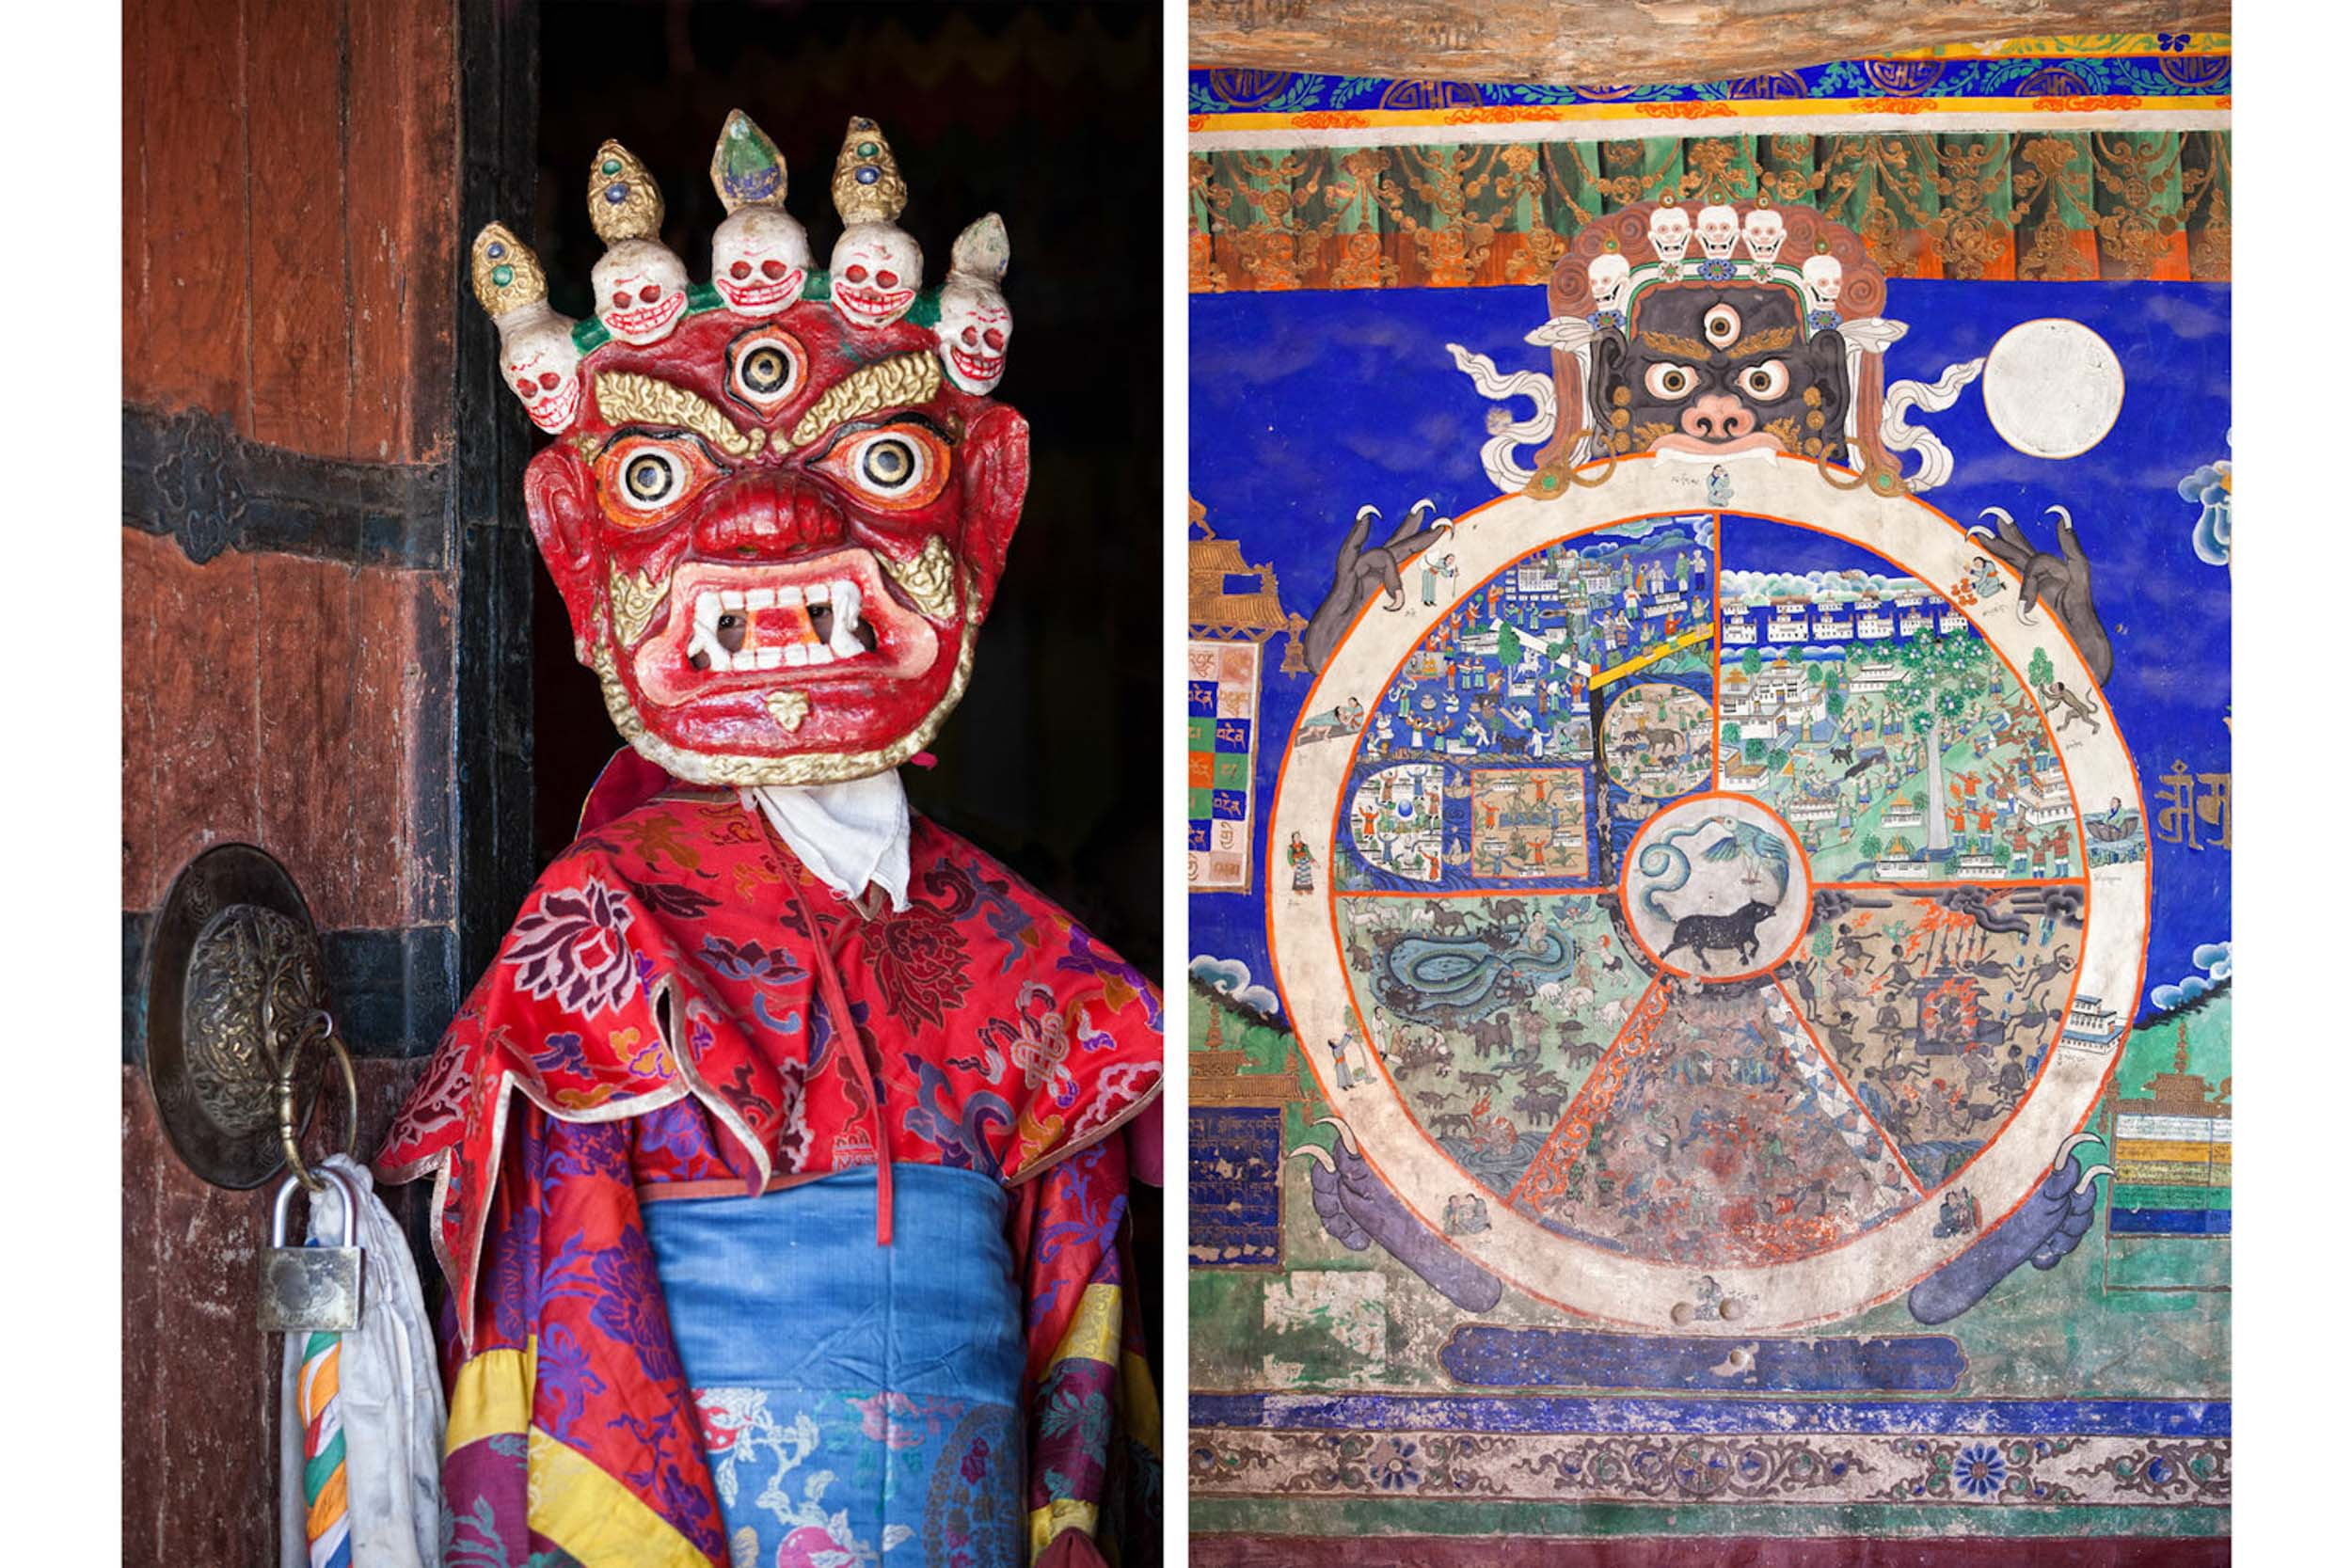 Travel-India-Ladakh-Leh-Thiksey-Buddhist-Monastery-Mask-Mural